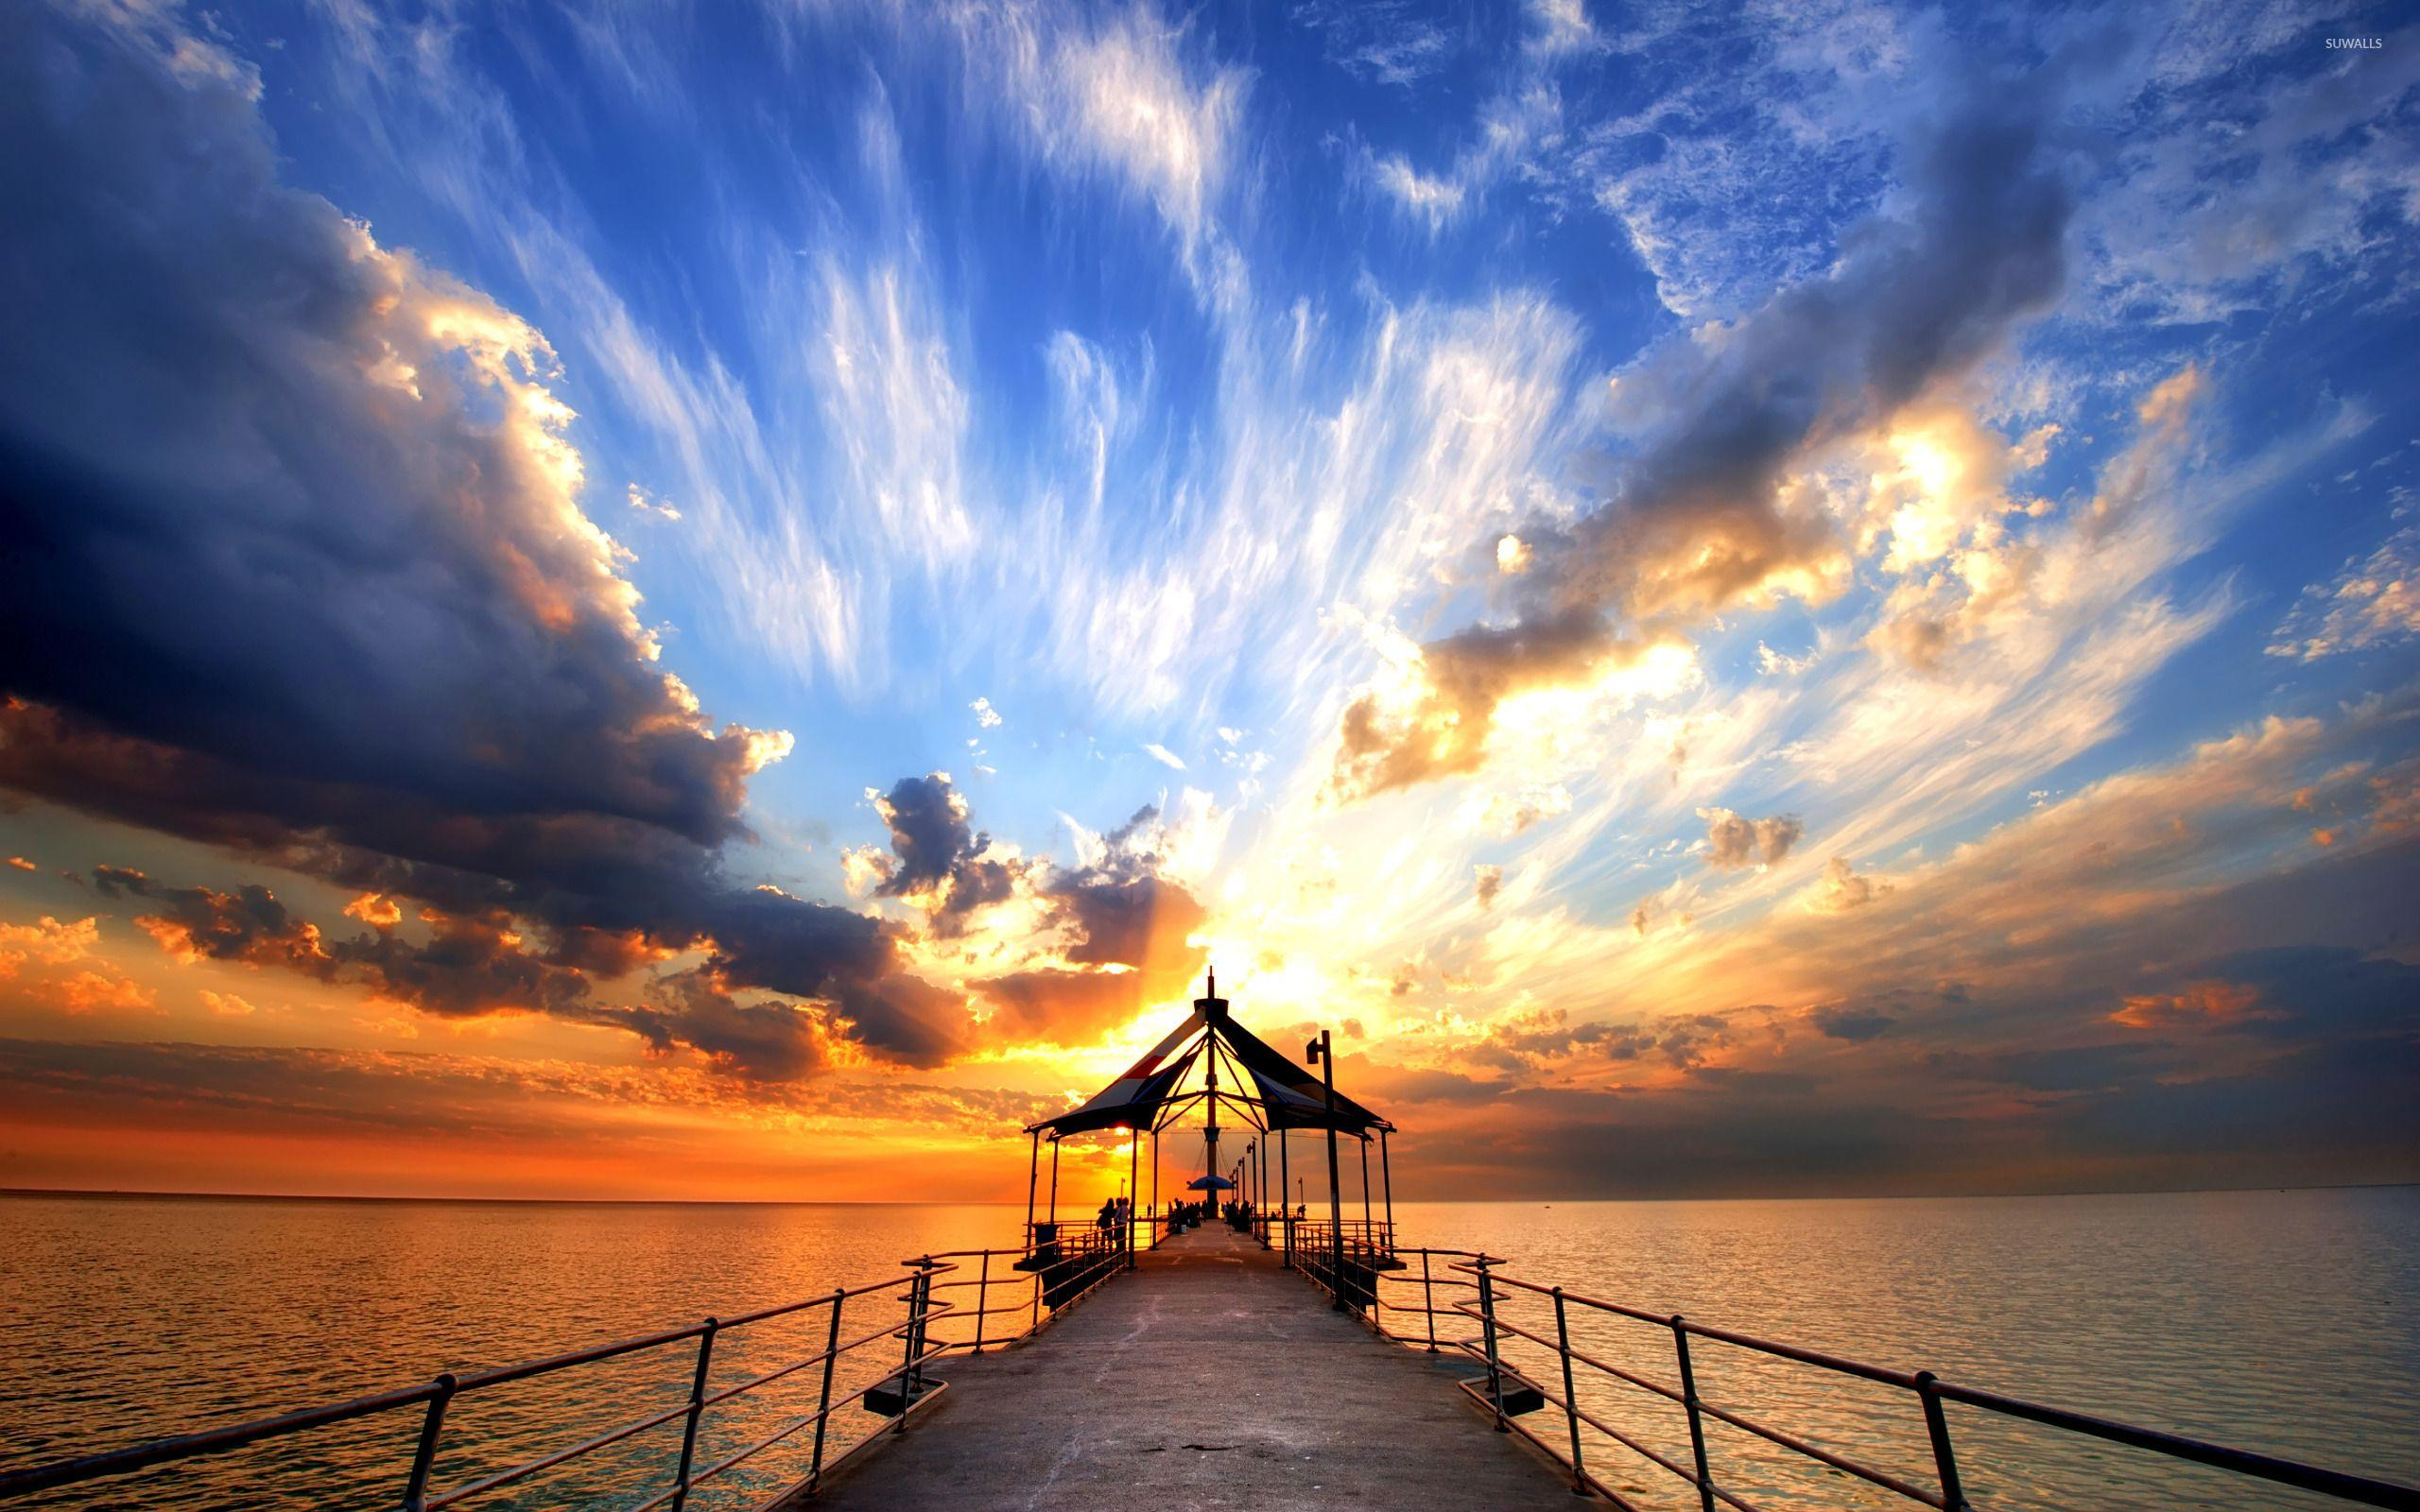 Pier in Trinidad and Tobago wallpaper - Photography wallpapers ...